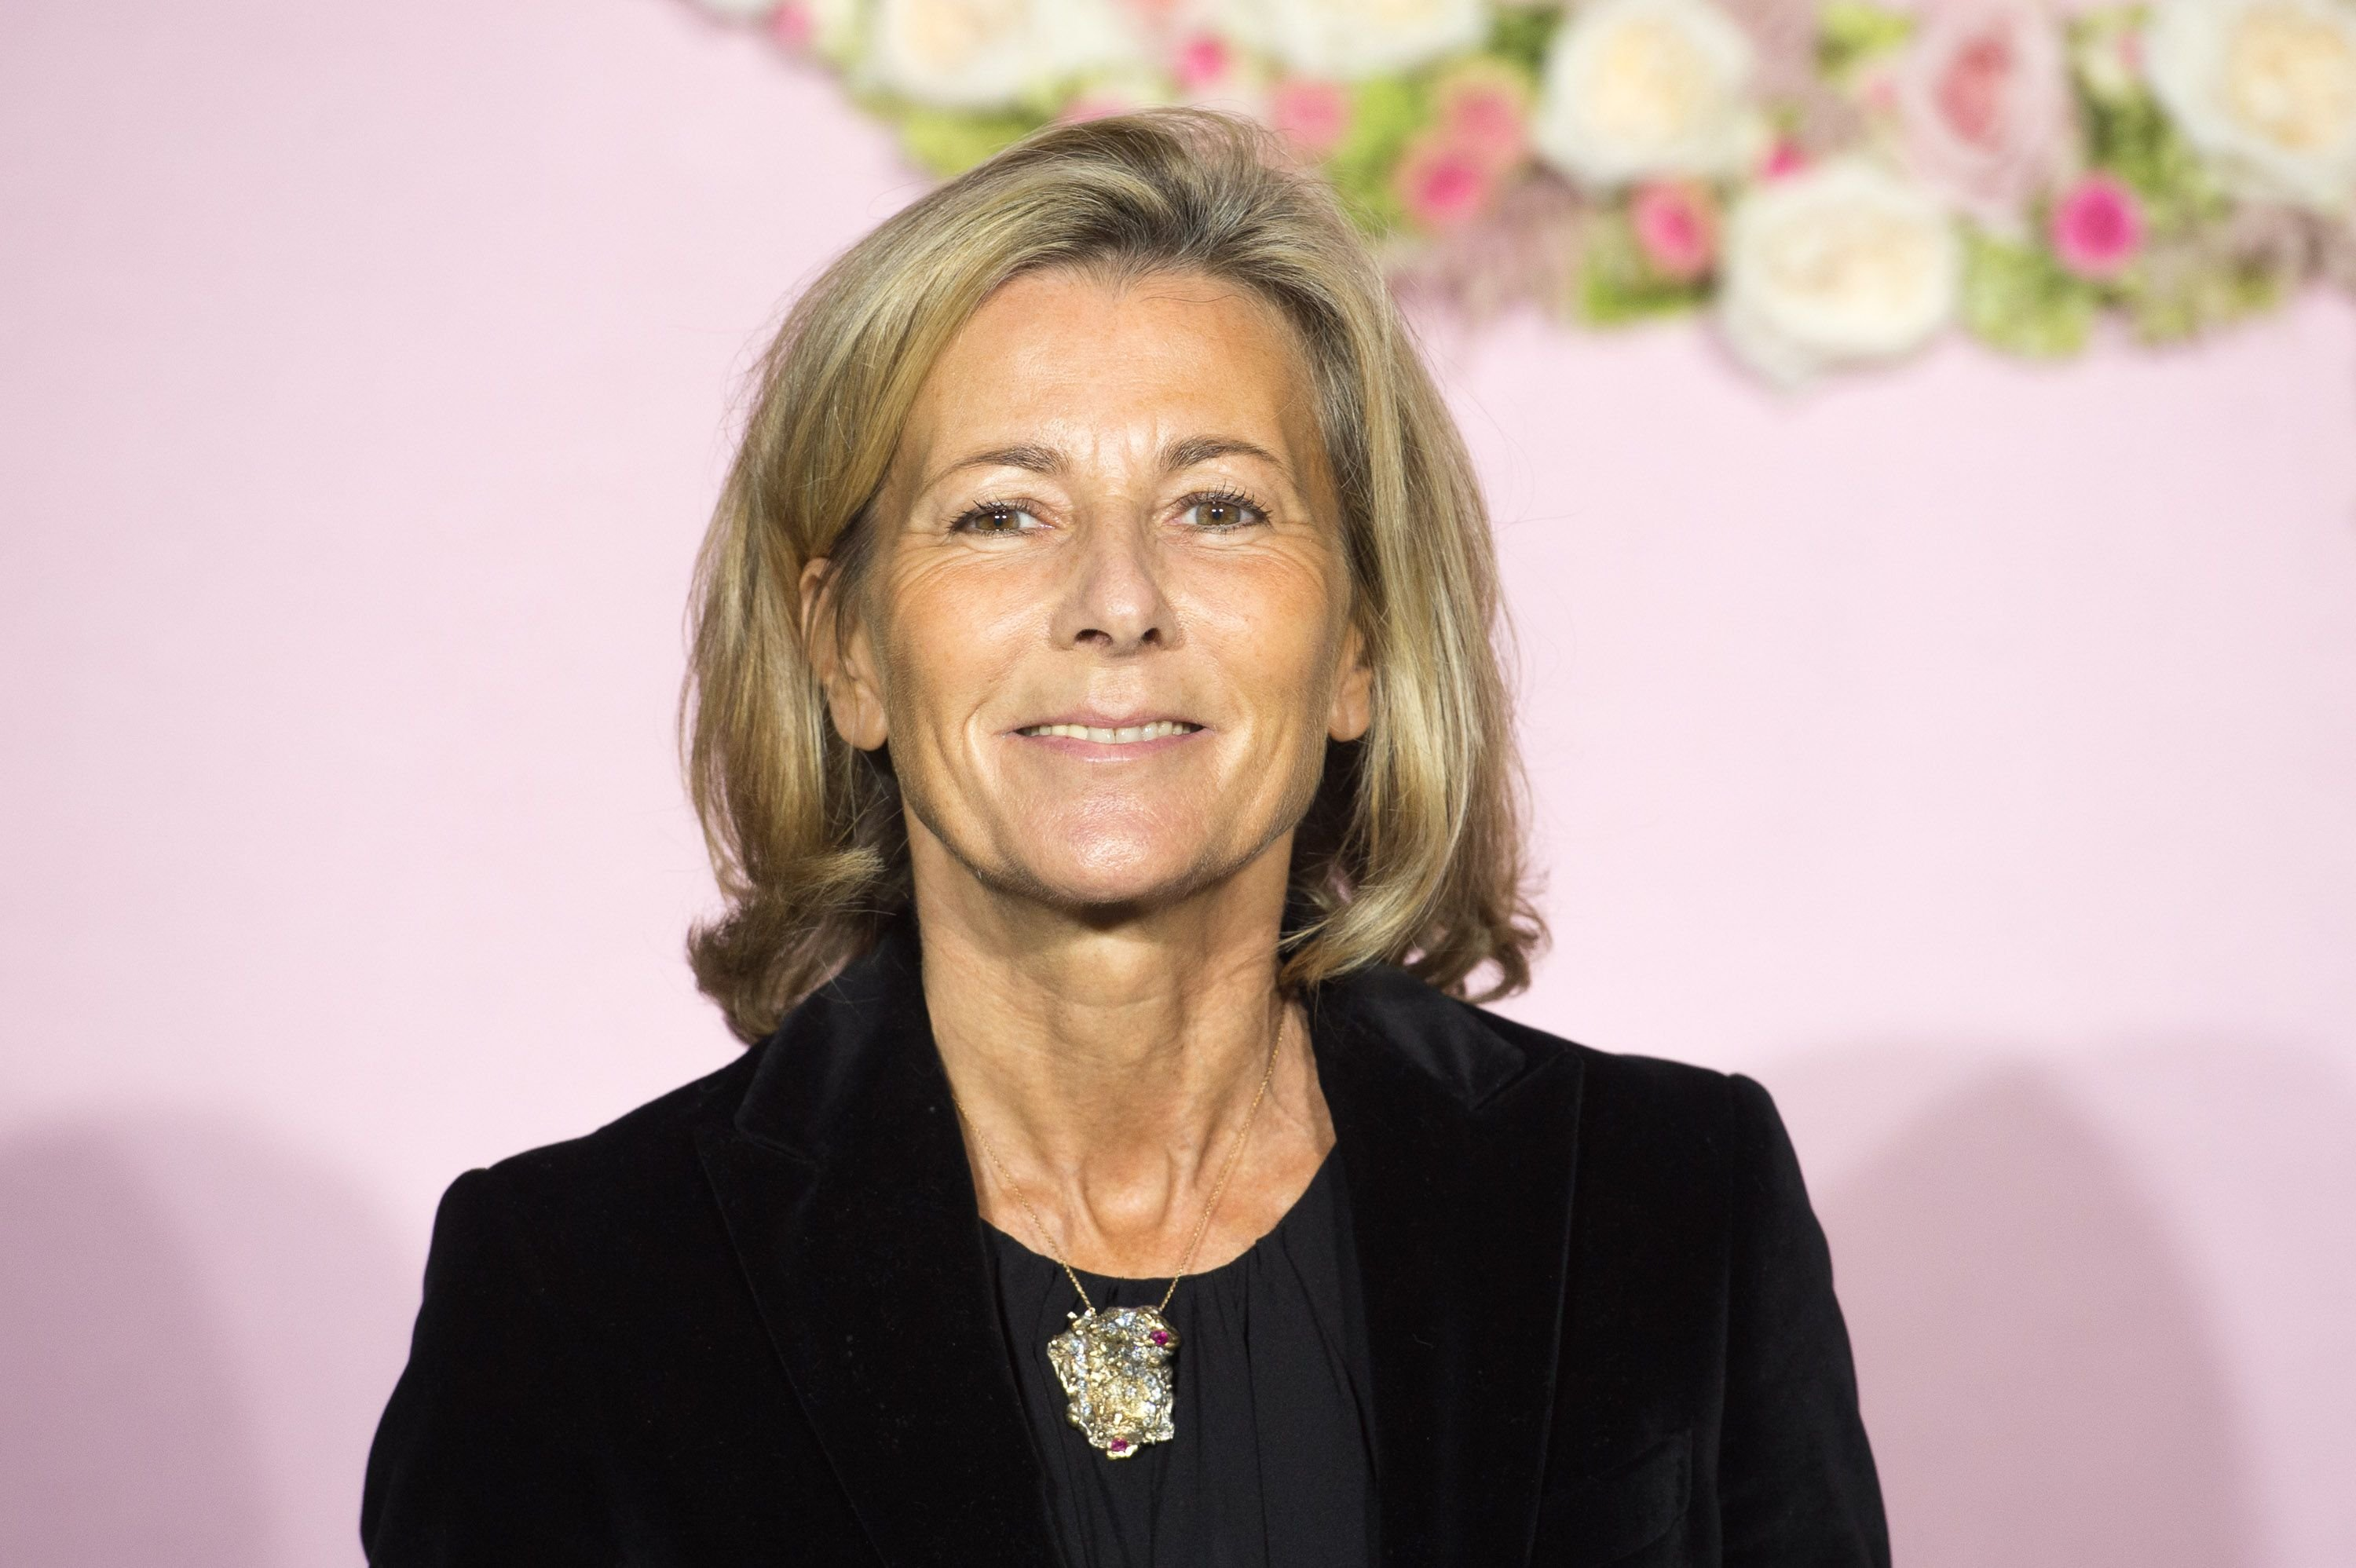 Claire Chazal le 24 septembre 2015 à Paris. l Source : Getty Images